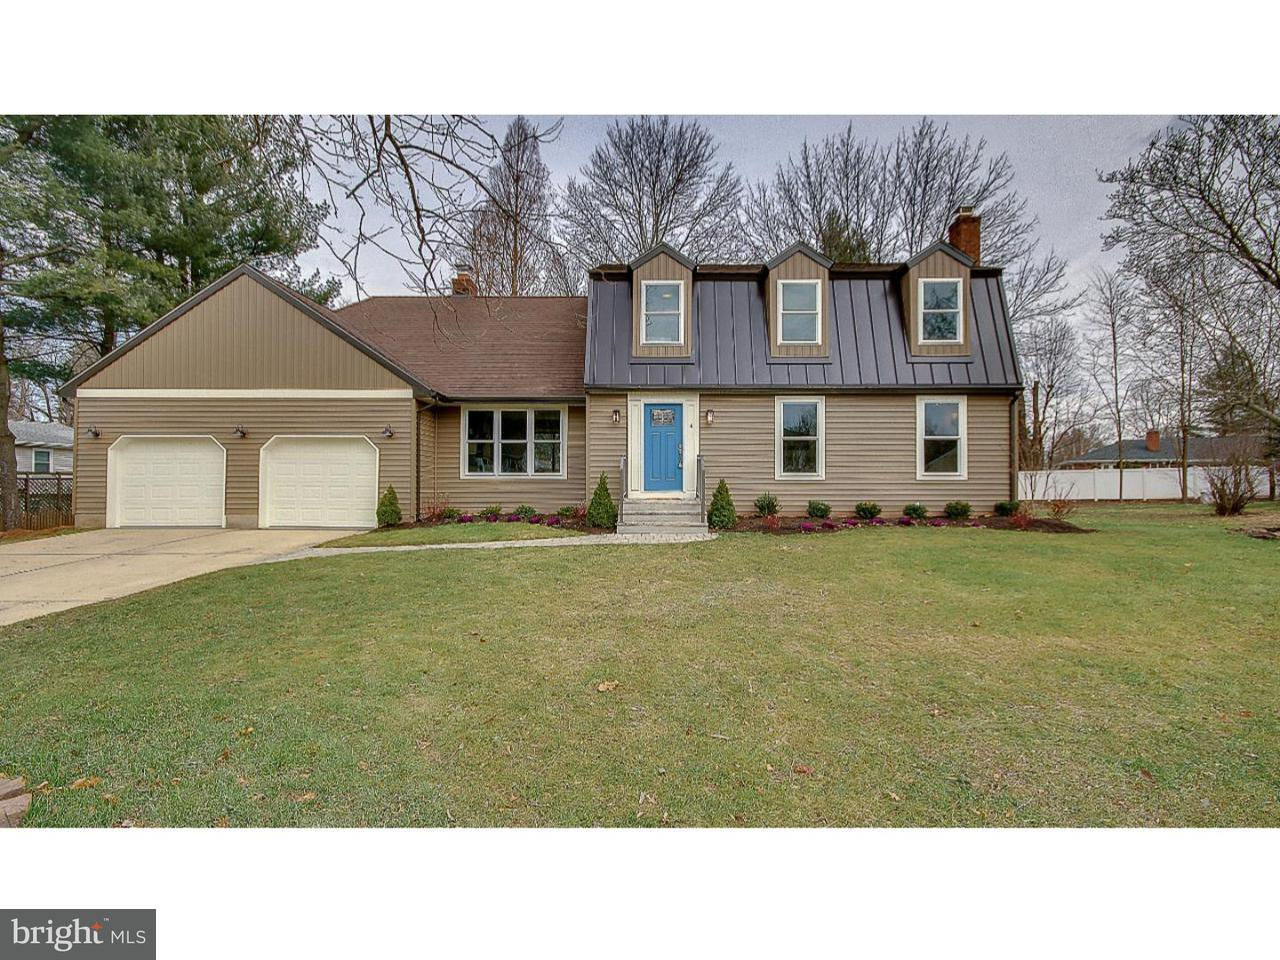 Single Family Home for Sale at 4 SANDY Lane Ewing Township, New Jersey 08628 United StatesMunicipality: Ewing Township